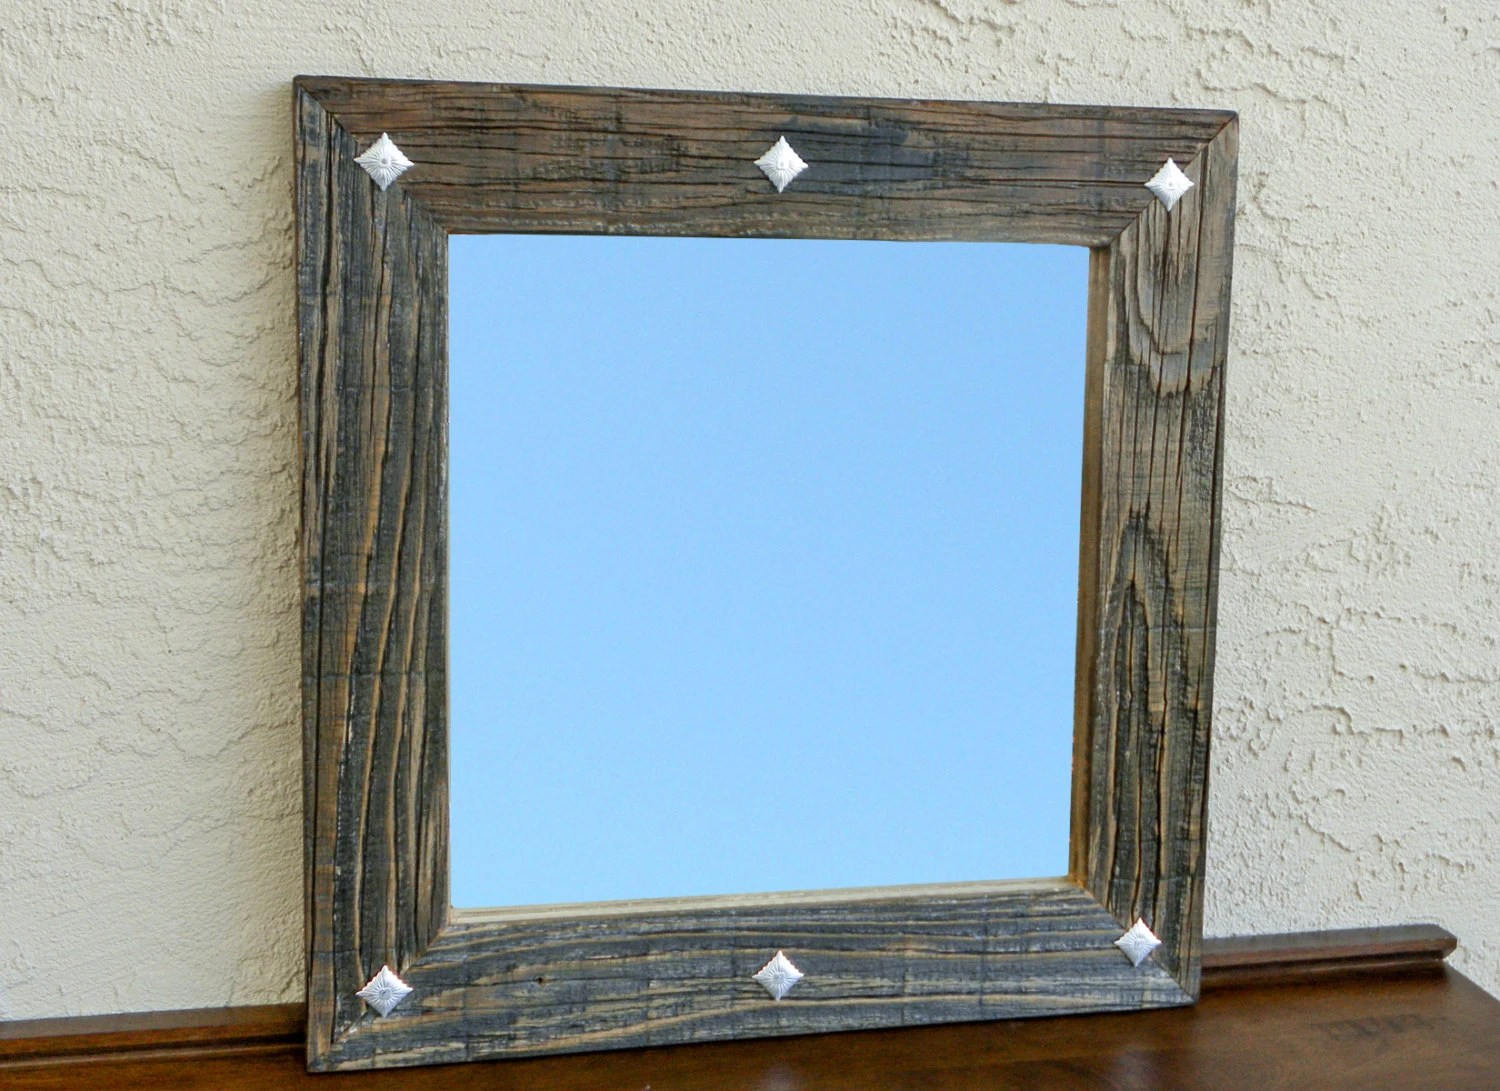 #HANDMADE Reclaimed Wood Mirror With Decorative Metal